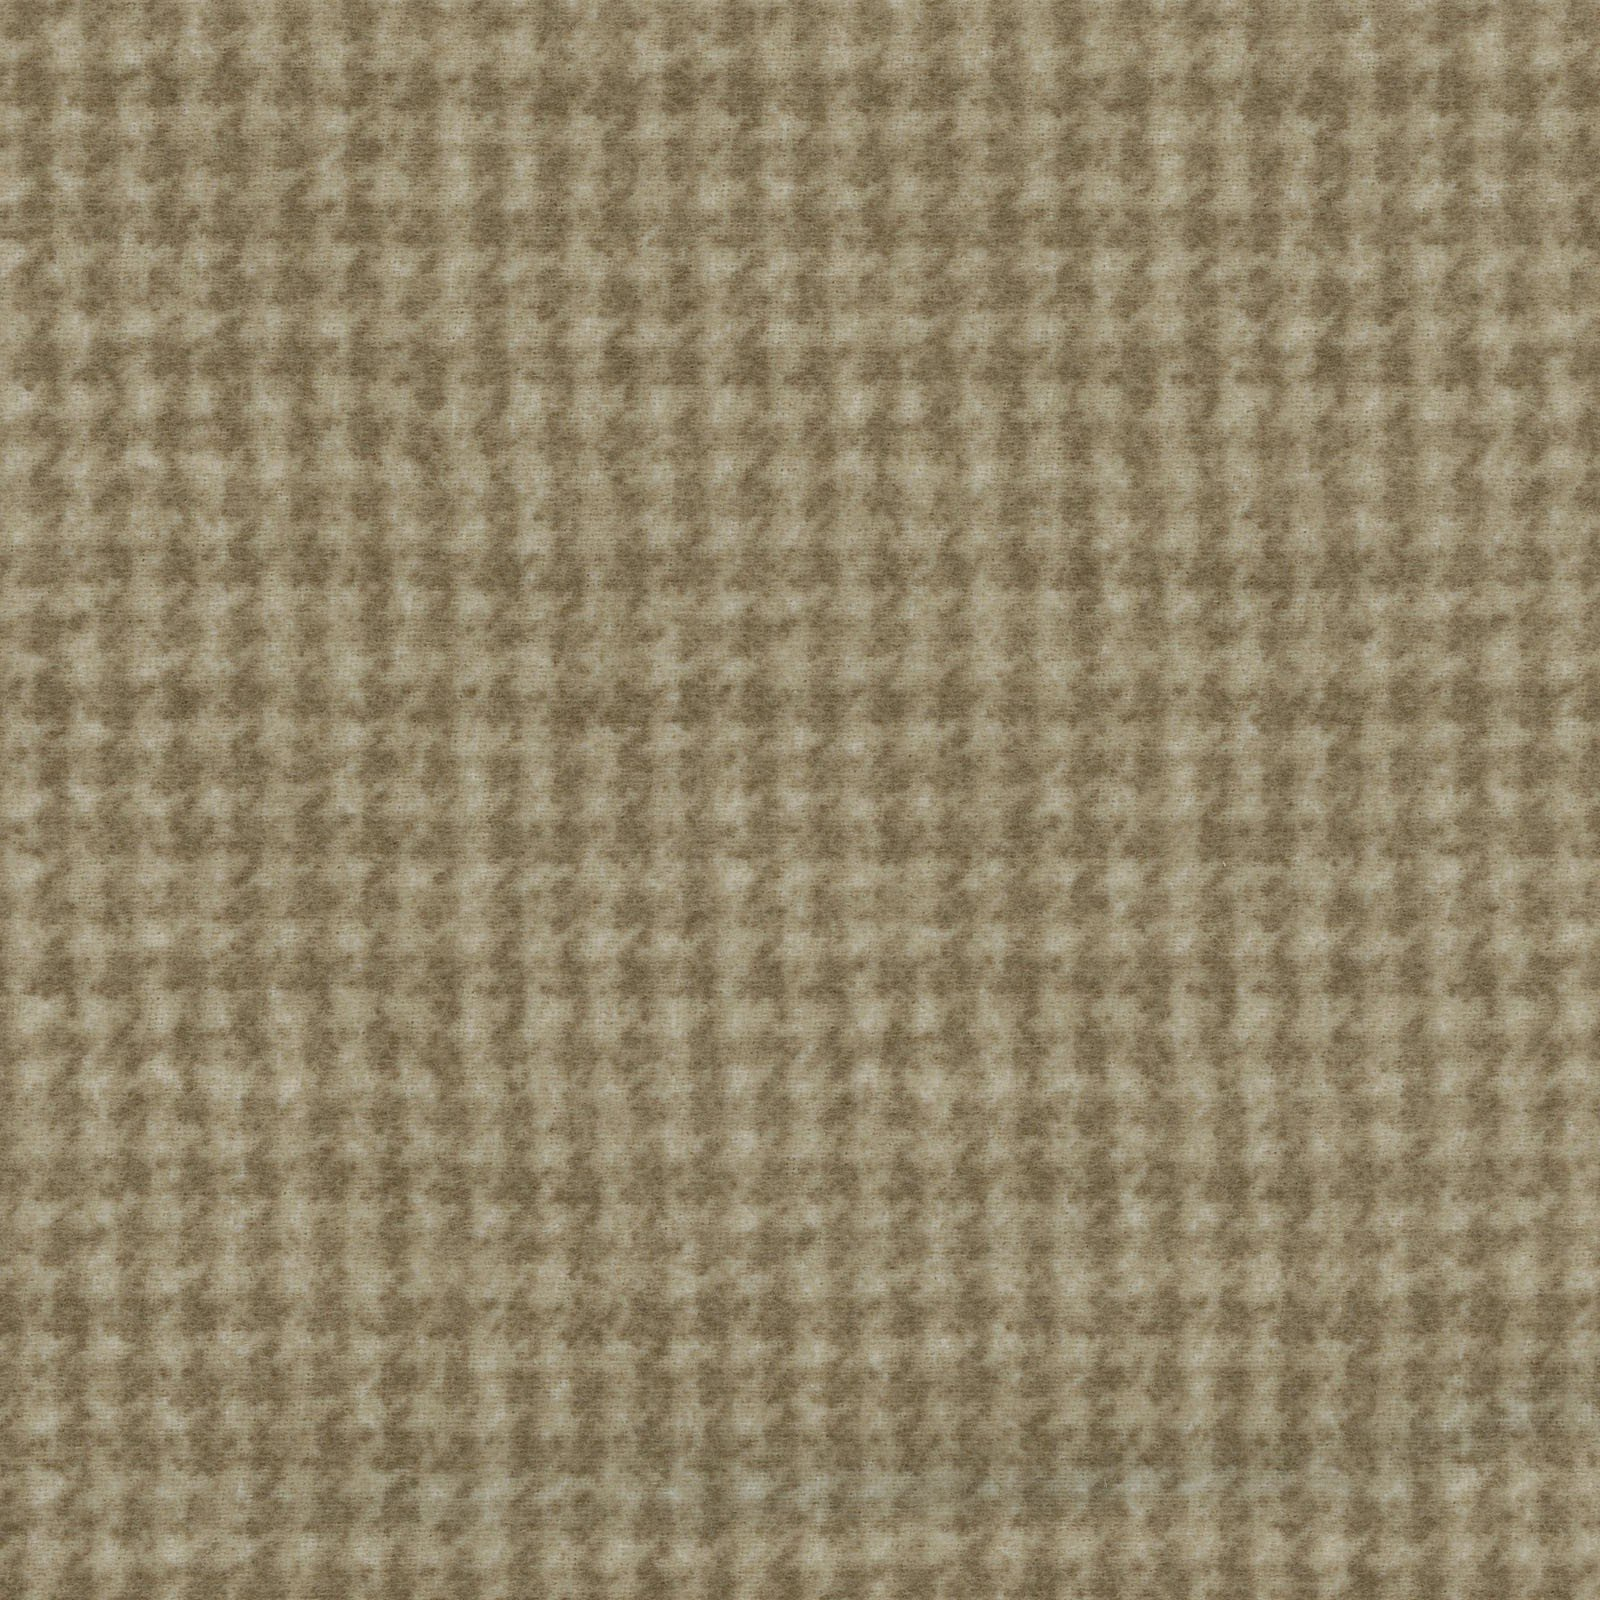 Woolies Flannel - Houndstooth - Khaki Brown